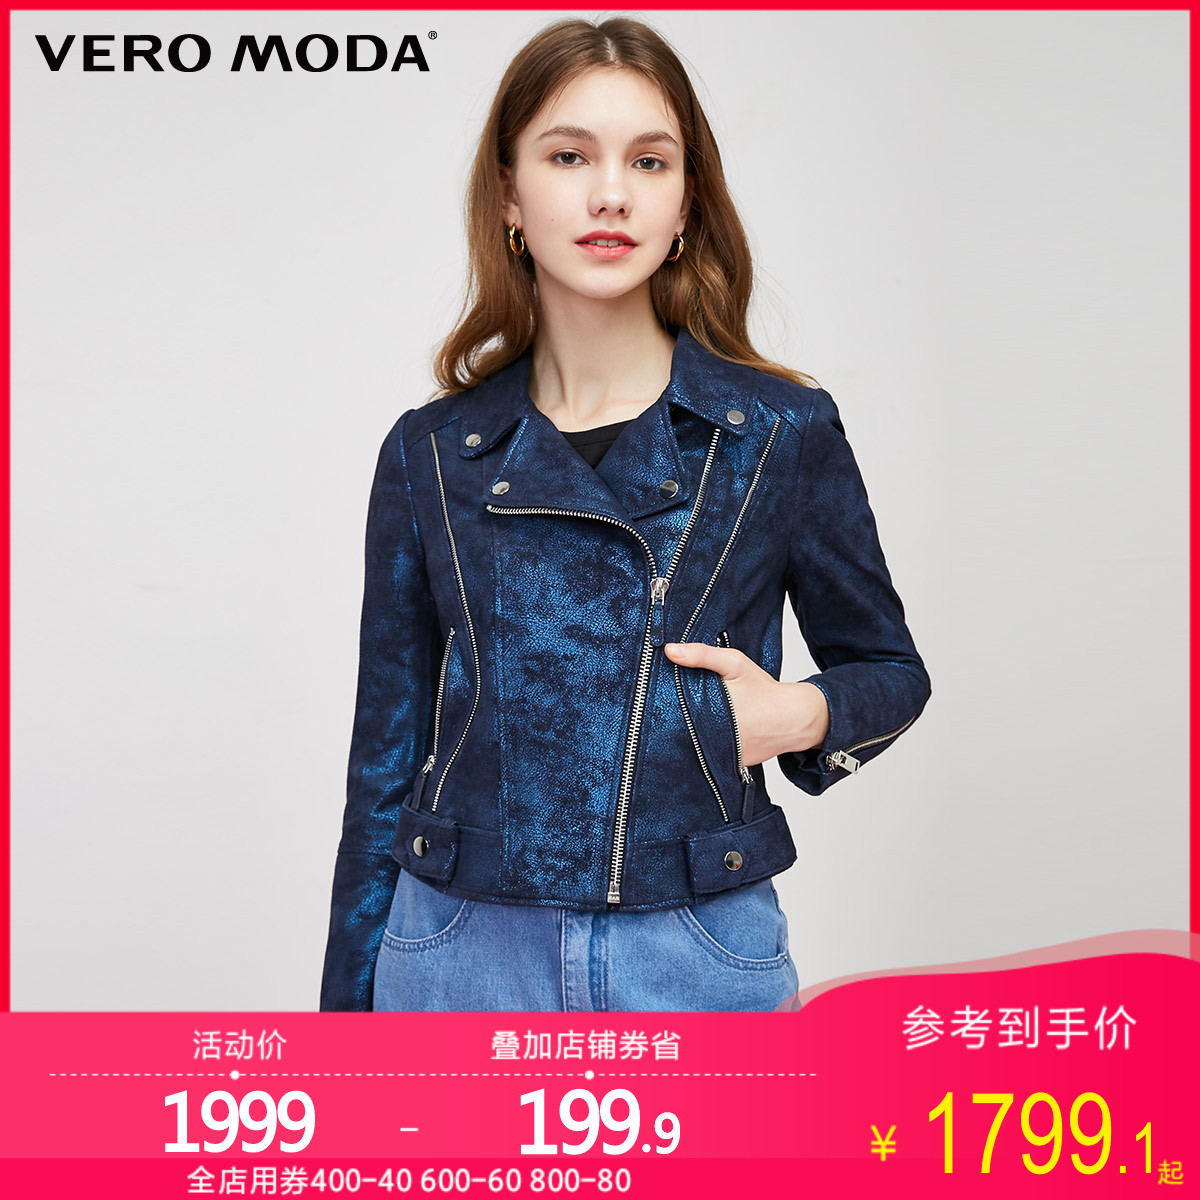 Vero moda2020 New Retro motorcycle Street Photo jacket leather leather leather women 320110526